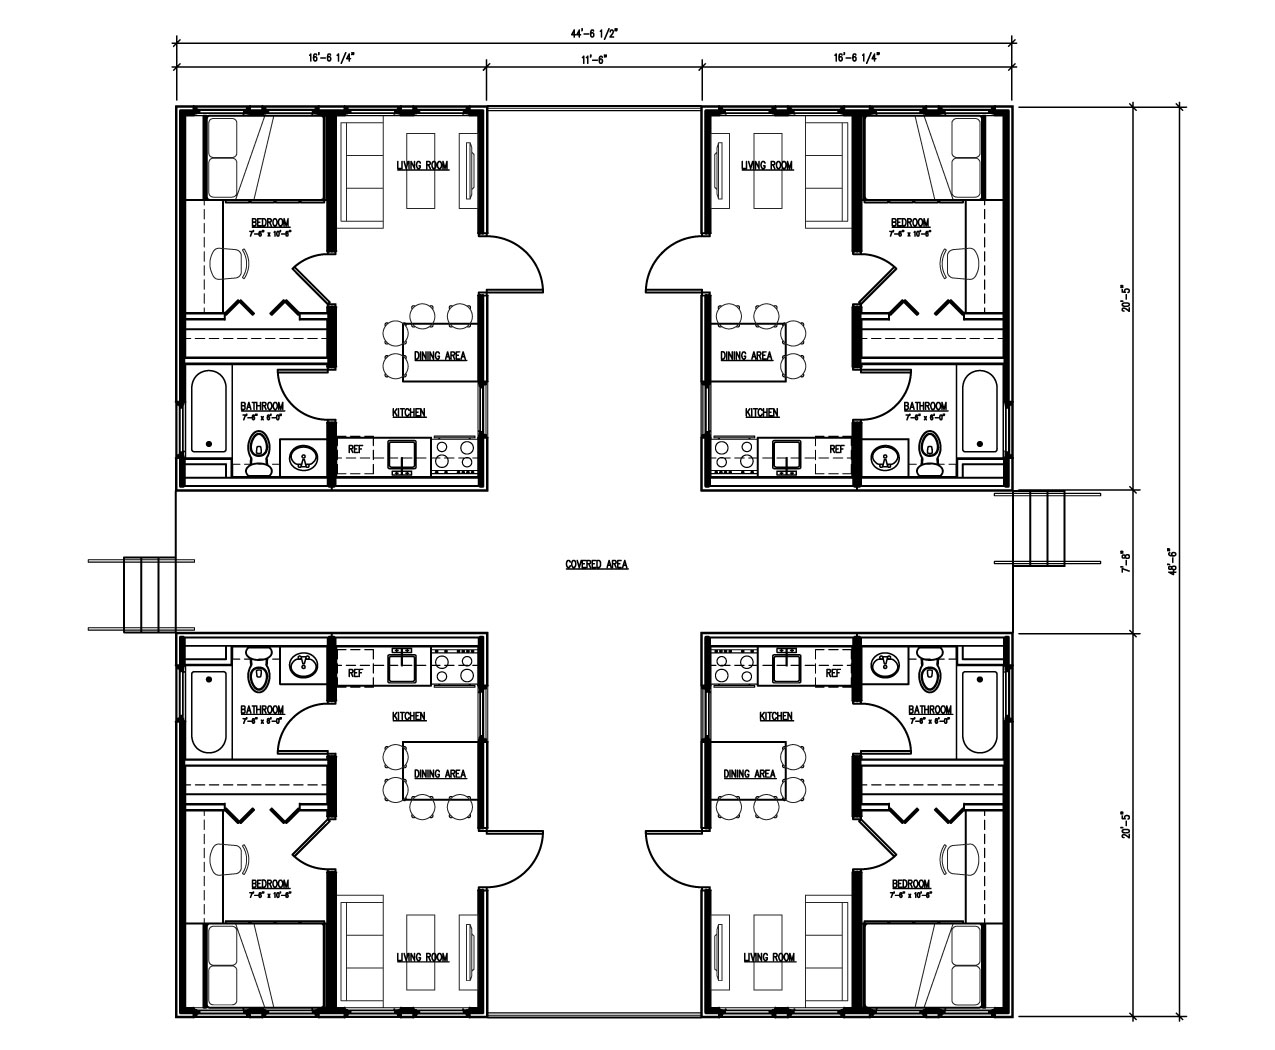 Isbu quad r one studio architecture for Free house plans and designs with cost to build